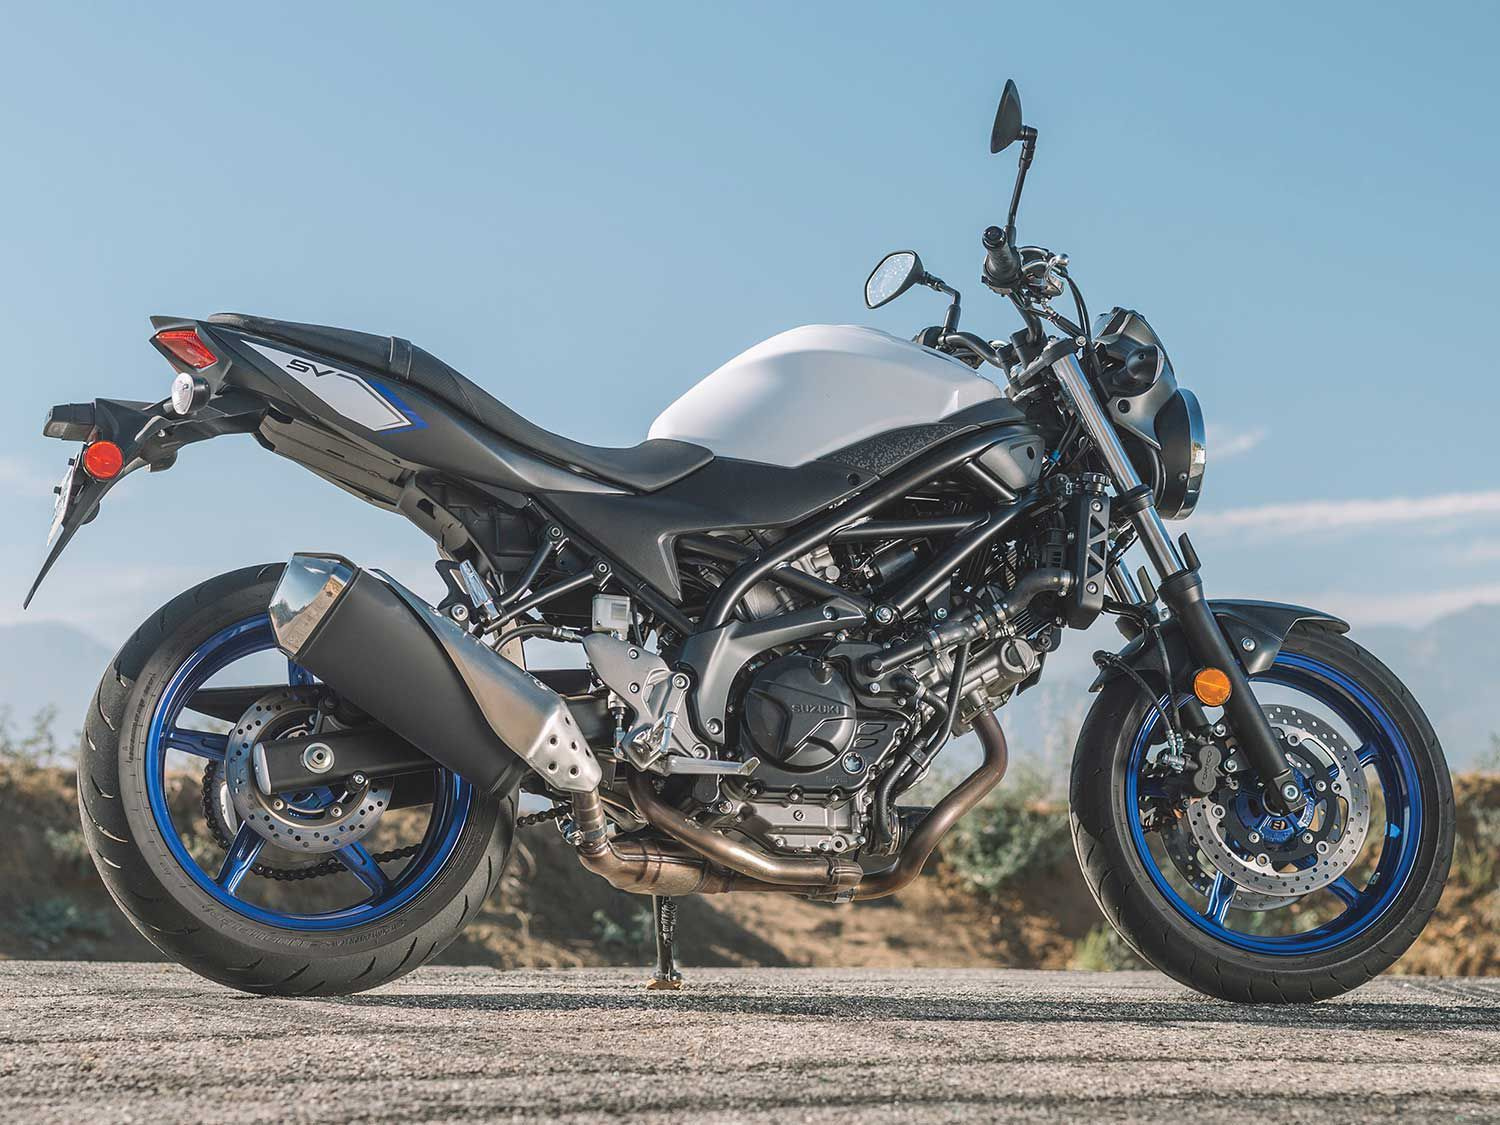 Since 1999, the SV650 has been one of the classic Suzuki names.